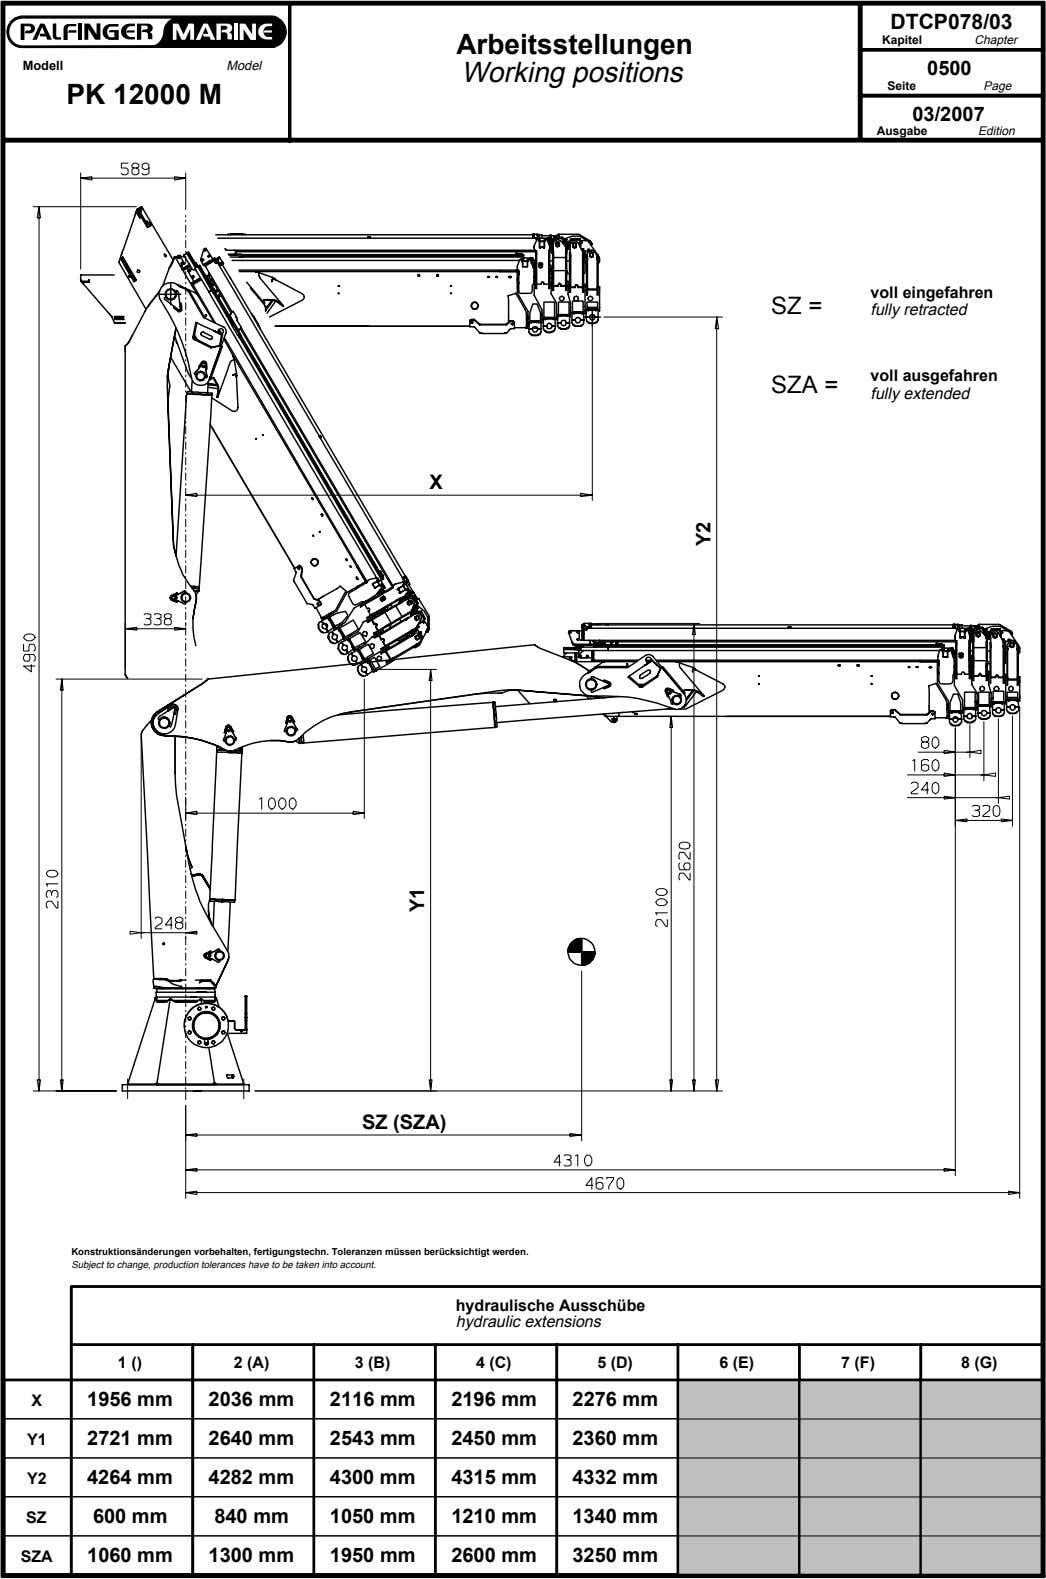 DTCP078/03 Arbeitsstellungen Kapitel Chapter Modell Model Working positions 0500 Seite Page PK 12000 M 03/2007